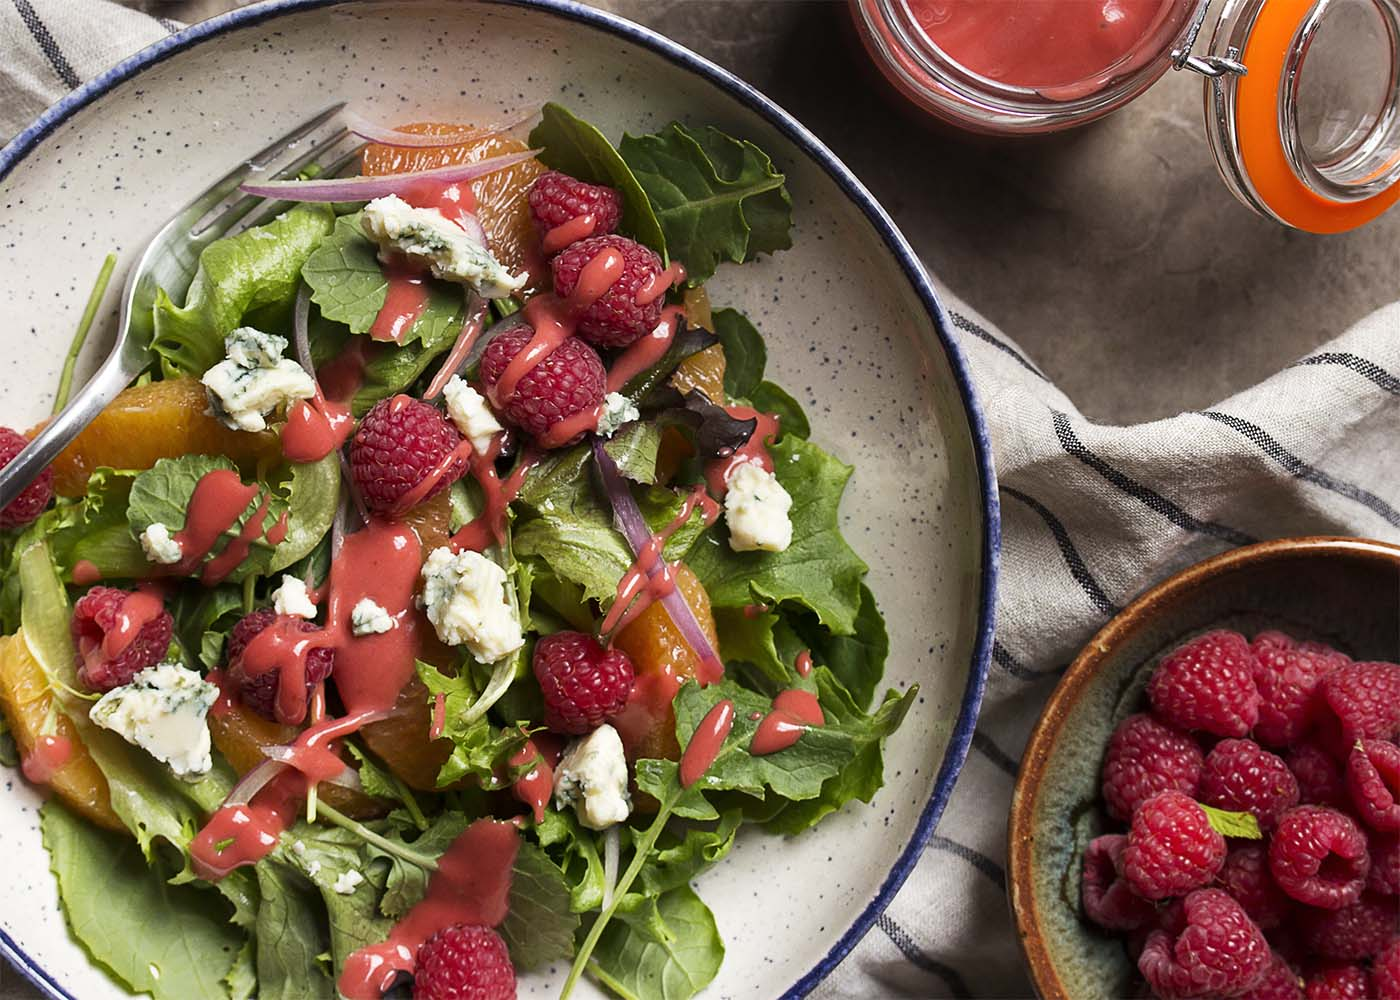 Overhead view of a wide bowl of a mixed greens, orange, and raspberry salad drizzled with raspberry vinaigrette.